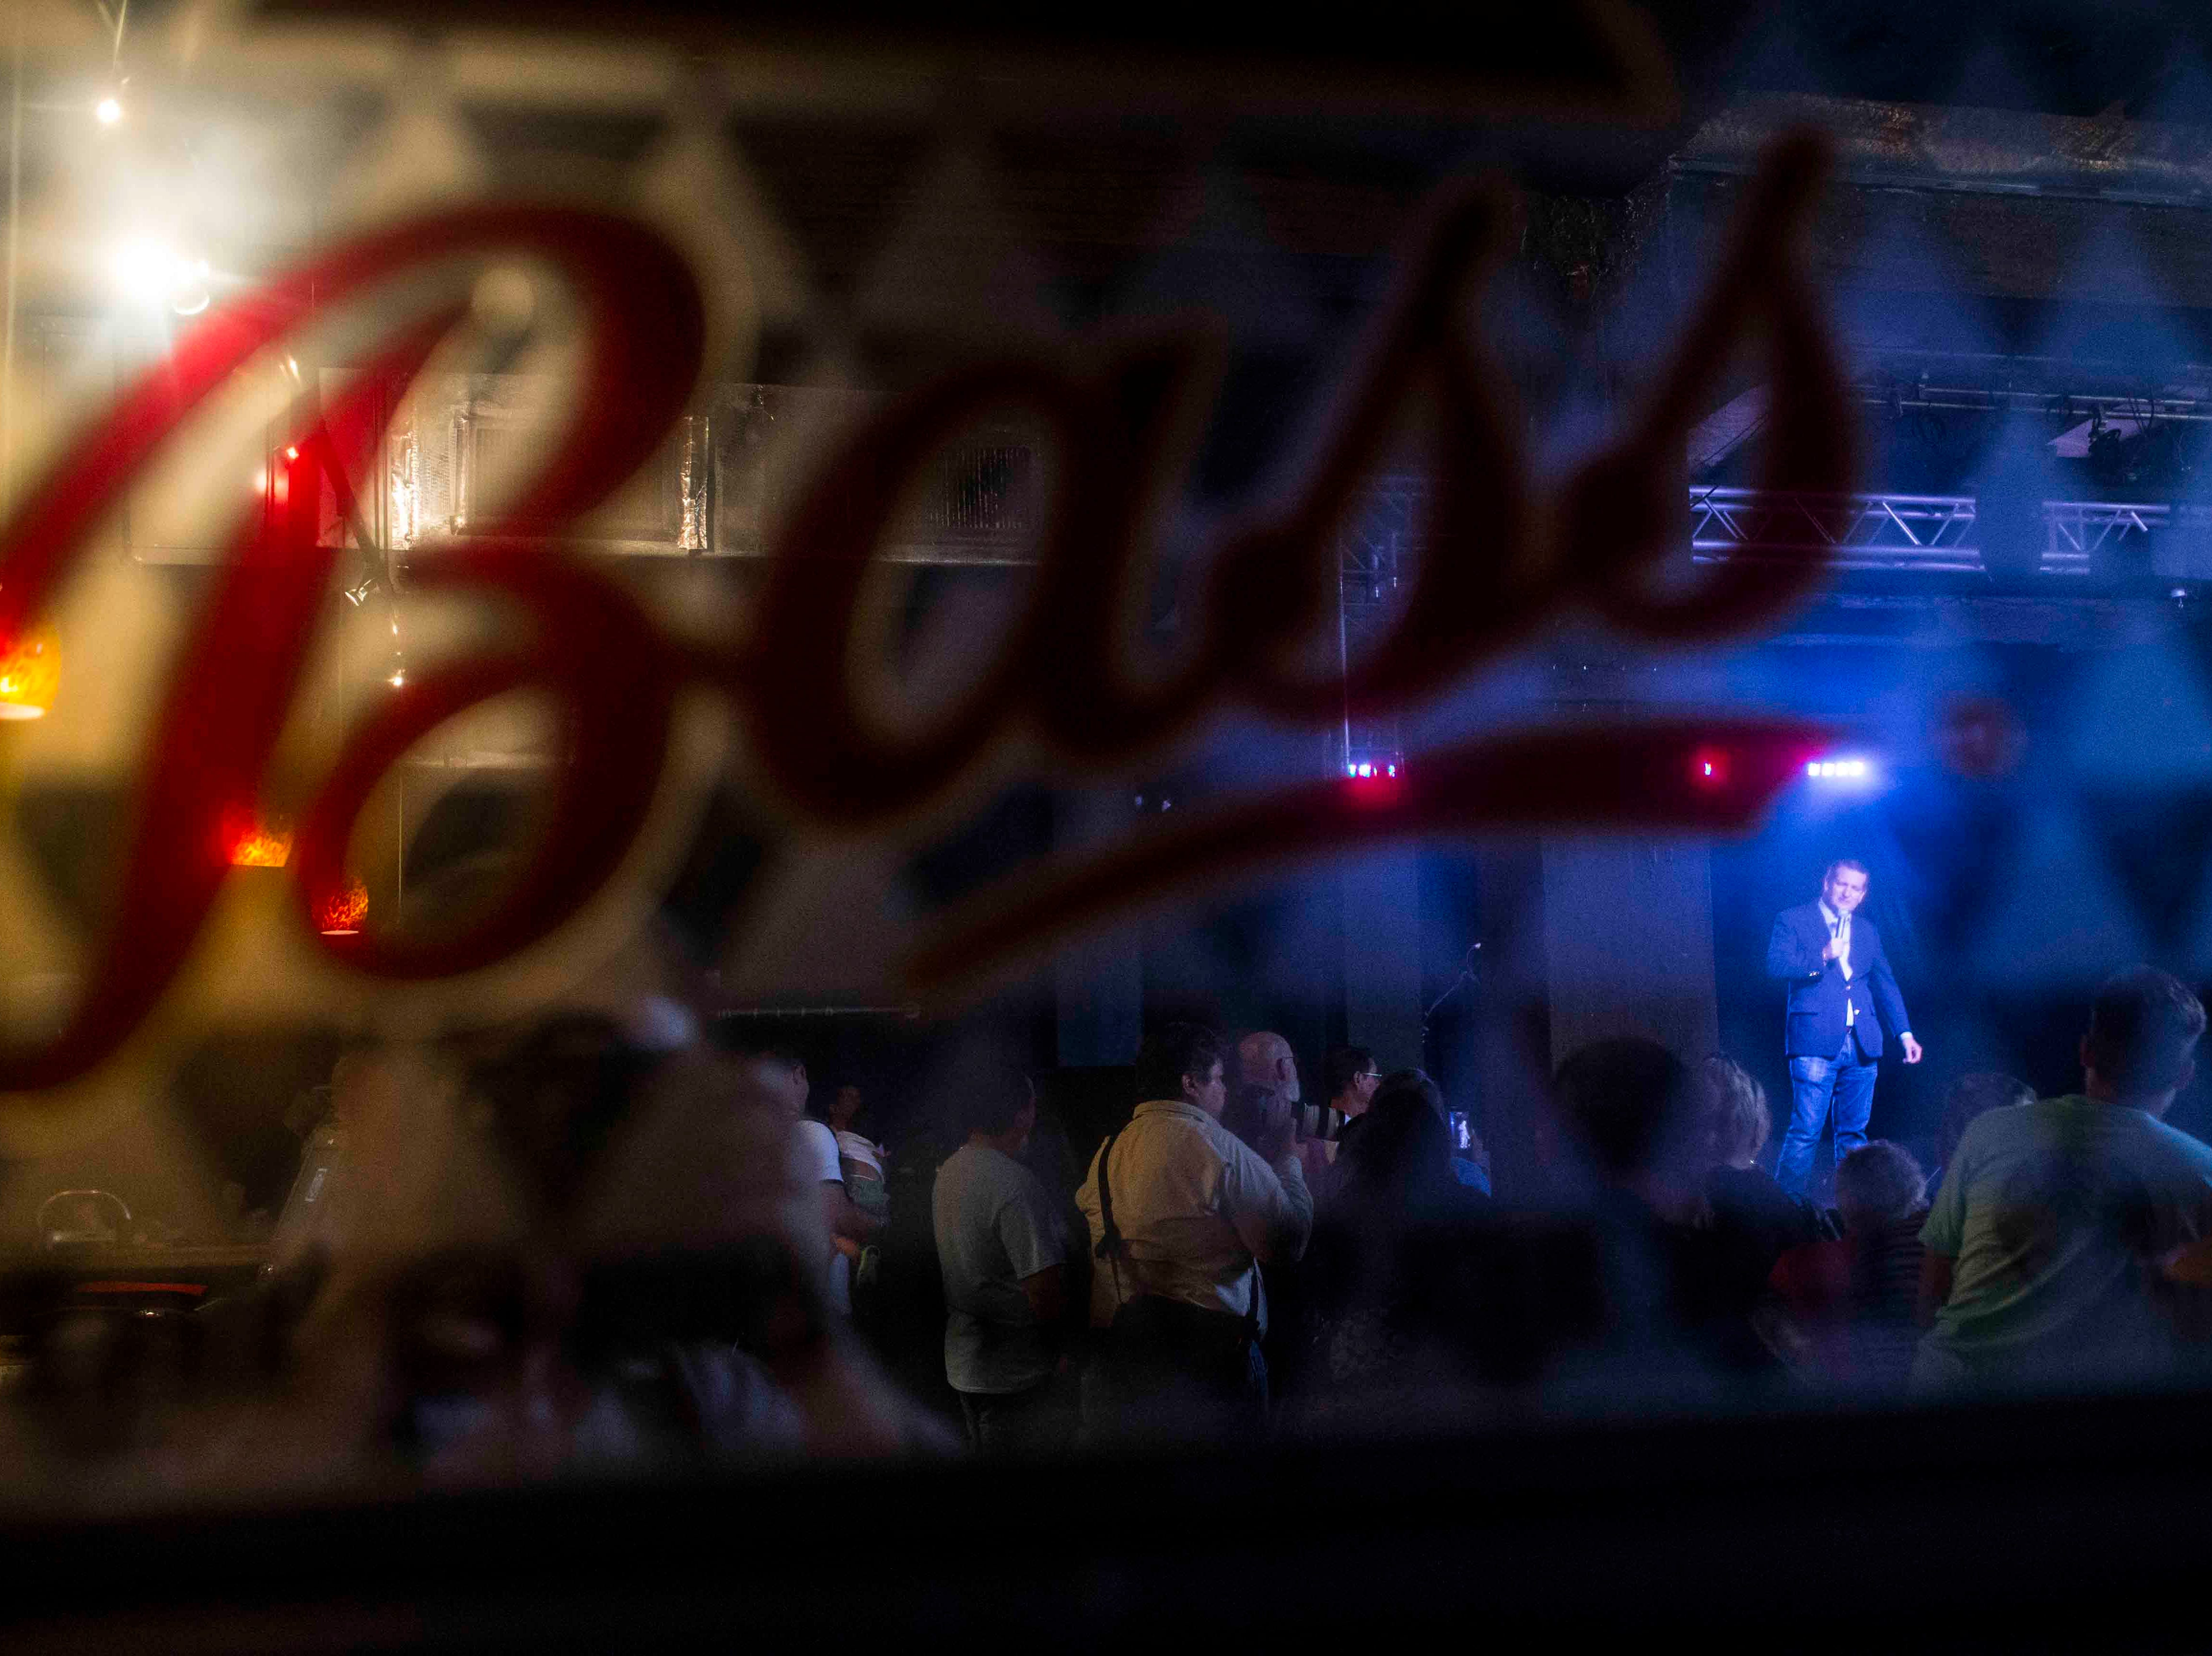 People gather for a Ted Cruz campaign event on Saturday, August 16, 2018, at House of Rock in Corpus Christi.